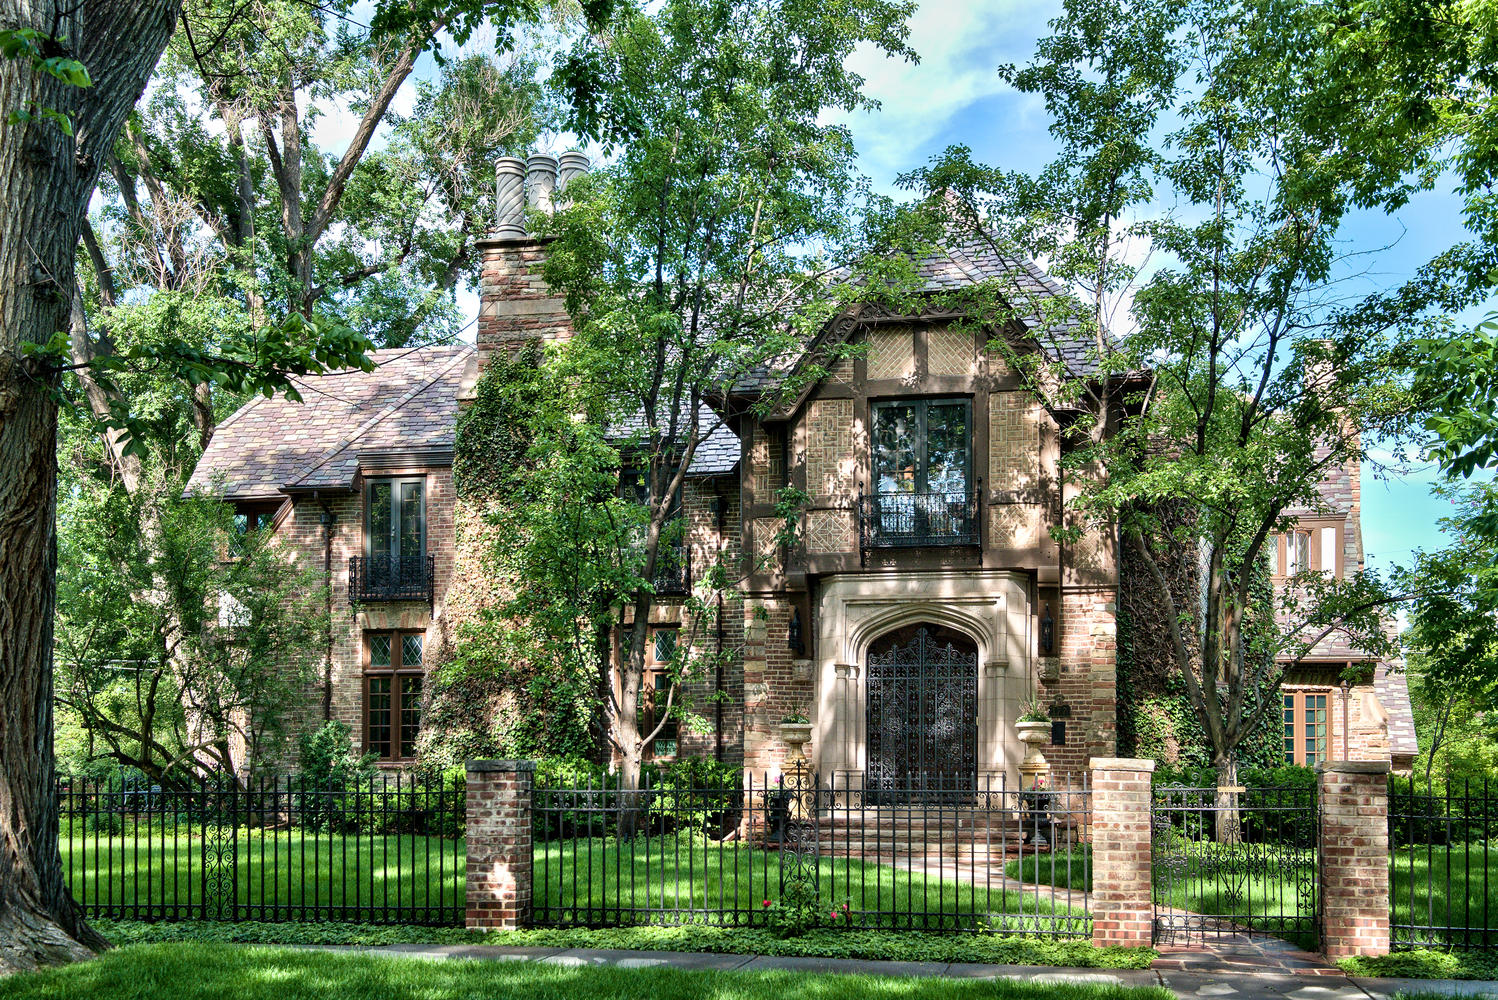 Single Family Home for Active at Grand 1930's Ivy Covered Tudor Gracefully Poised Behind Wrought Iron Gates 177 N. Humboldt Street Denver, Colorado 80218 United States